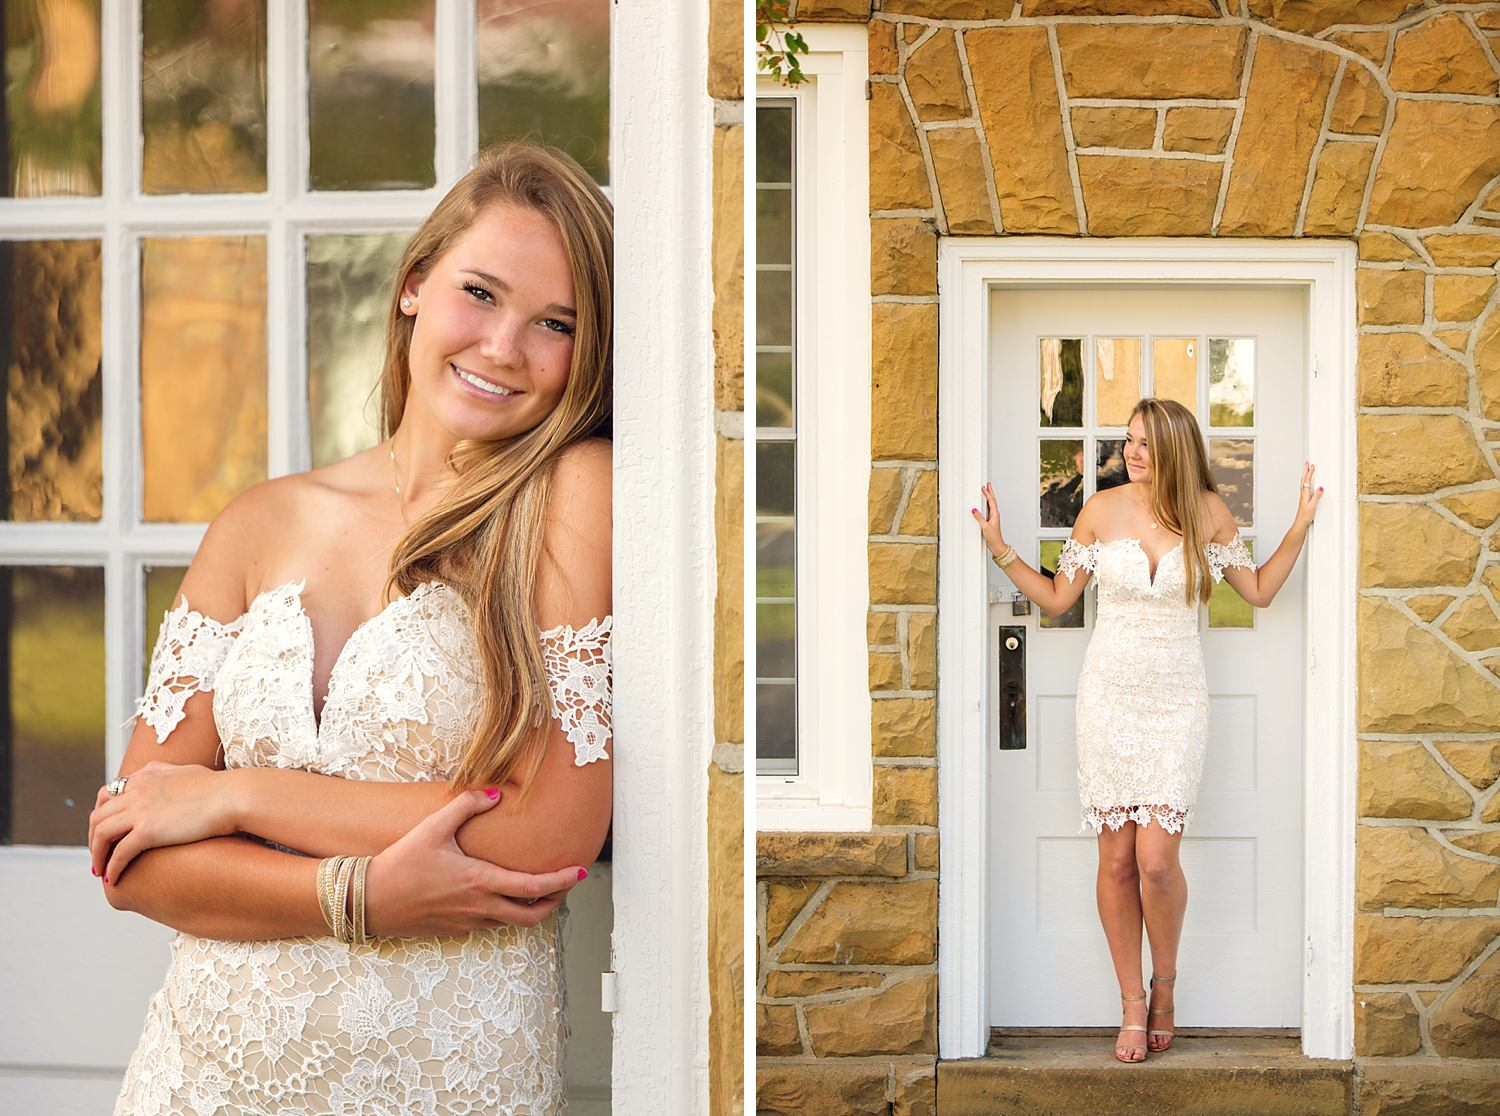 outdoor High school senior portraits at bryn du mansion in granville ohio